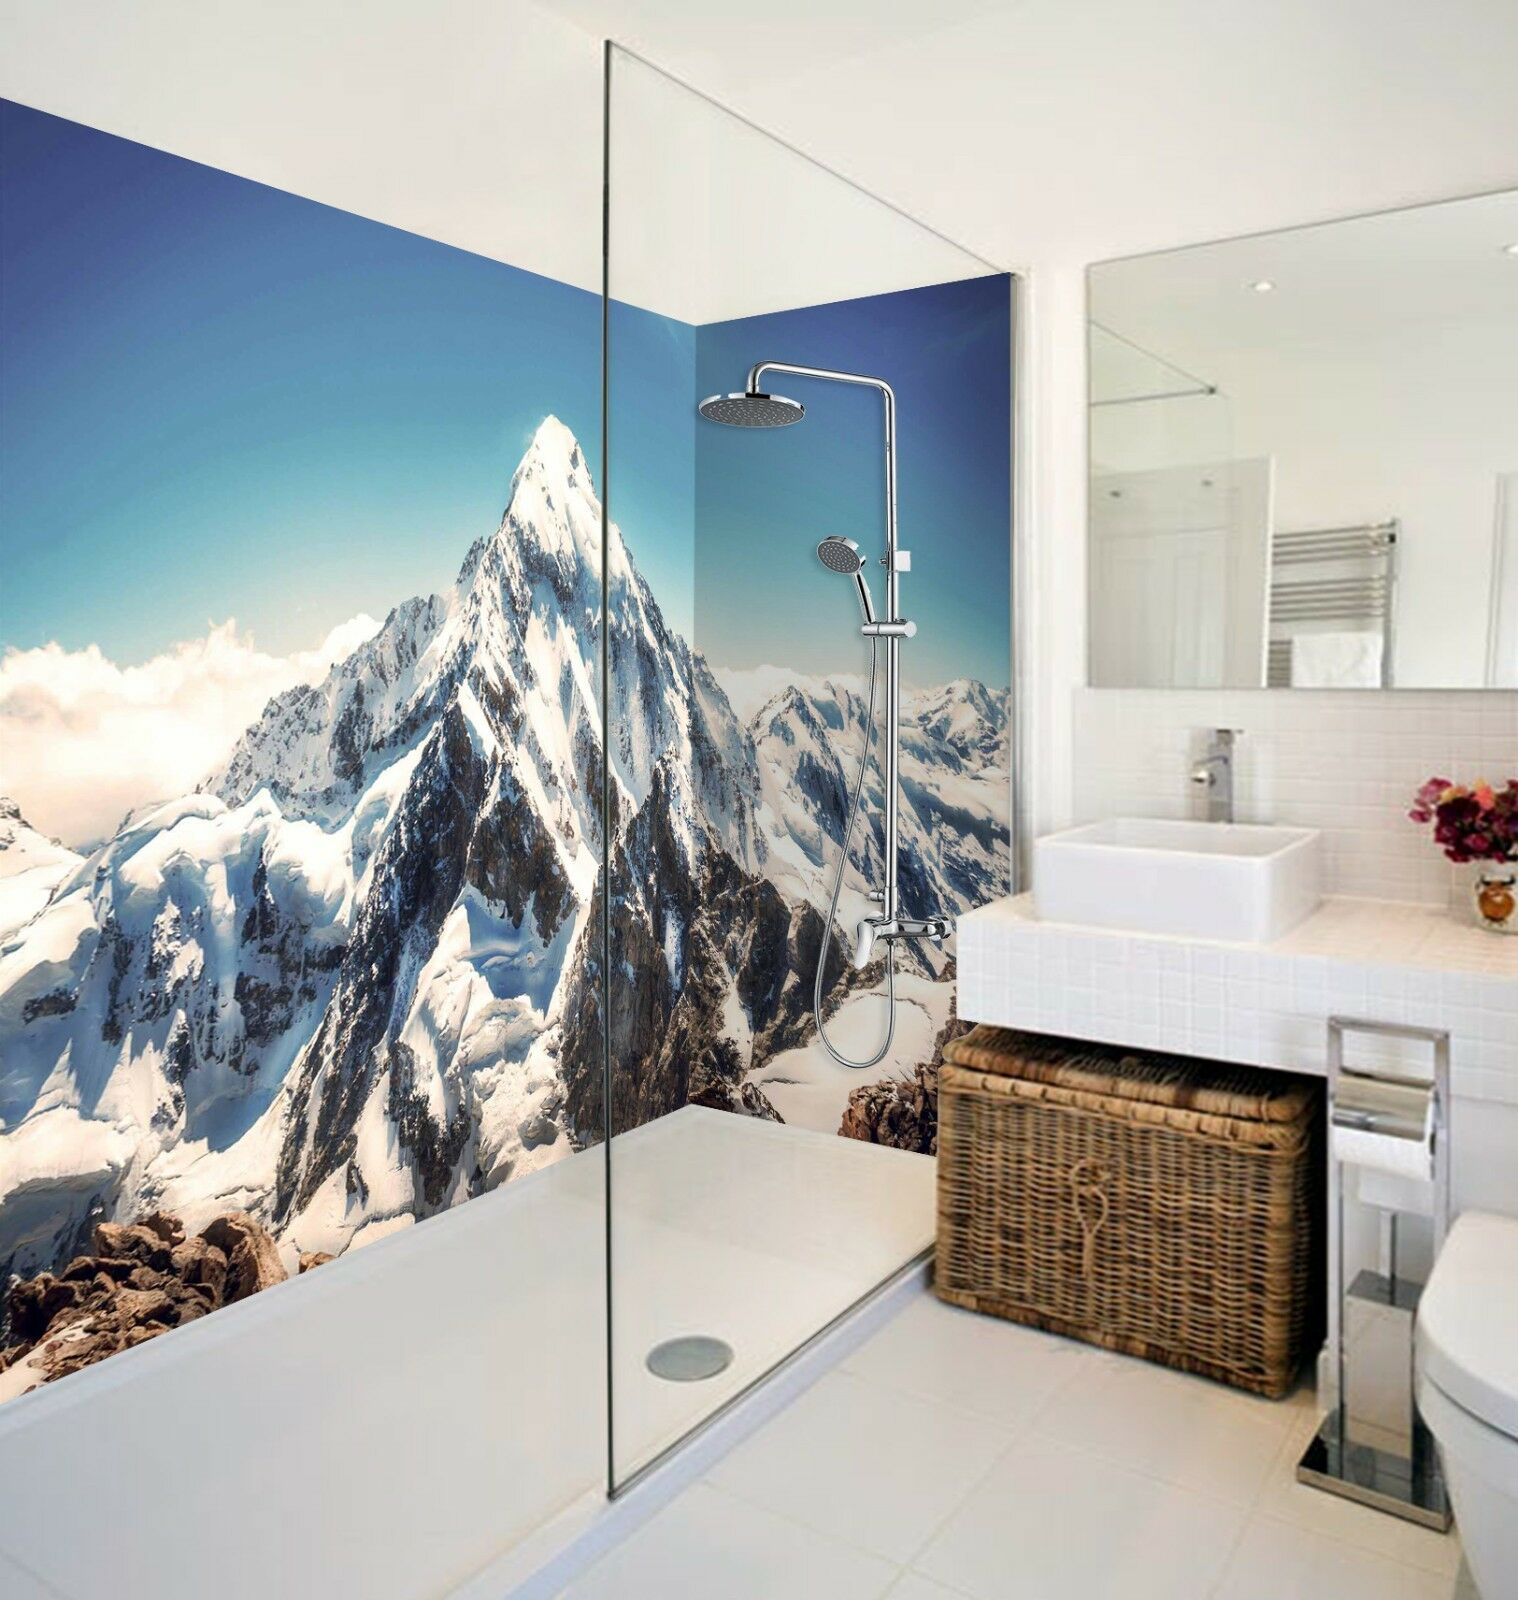 3D Weiß Snow Hills WallPaper Bathroom Print Decal Wall Deco AJ WALLPAPER UK